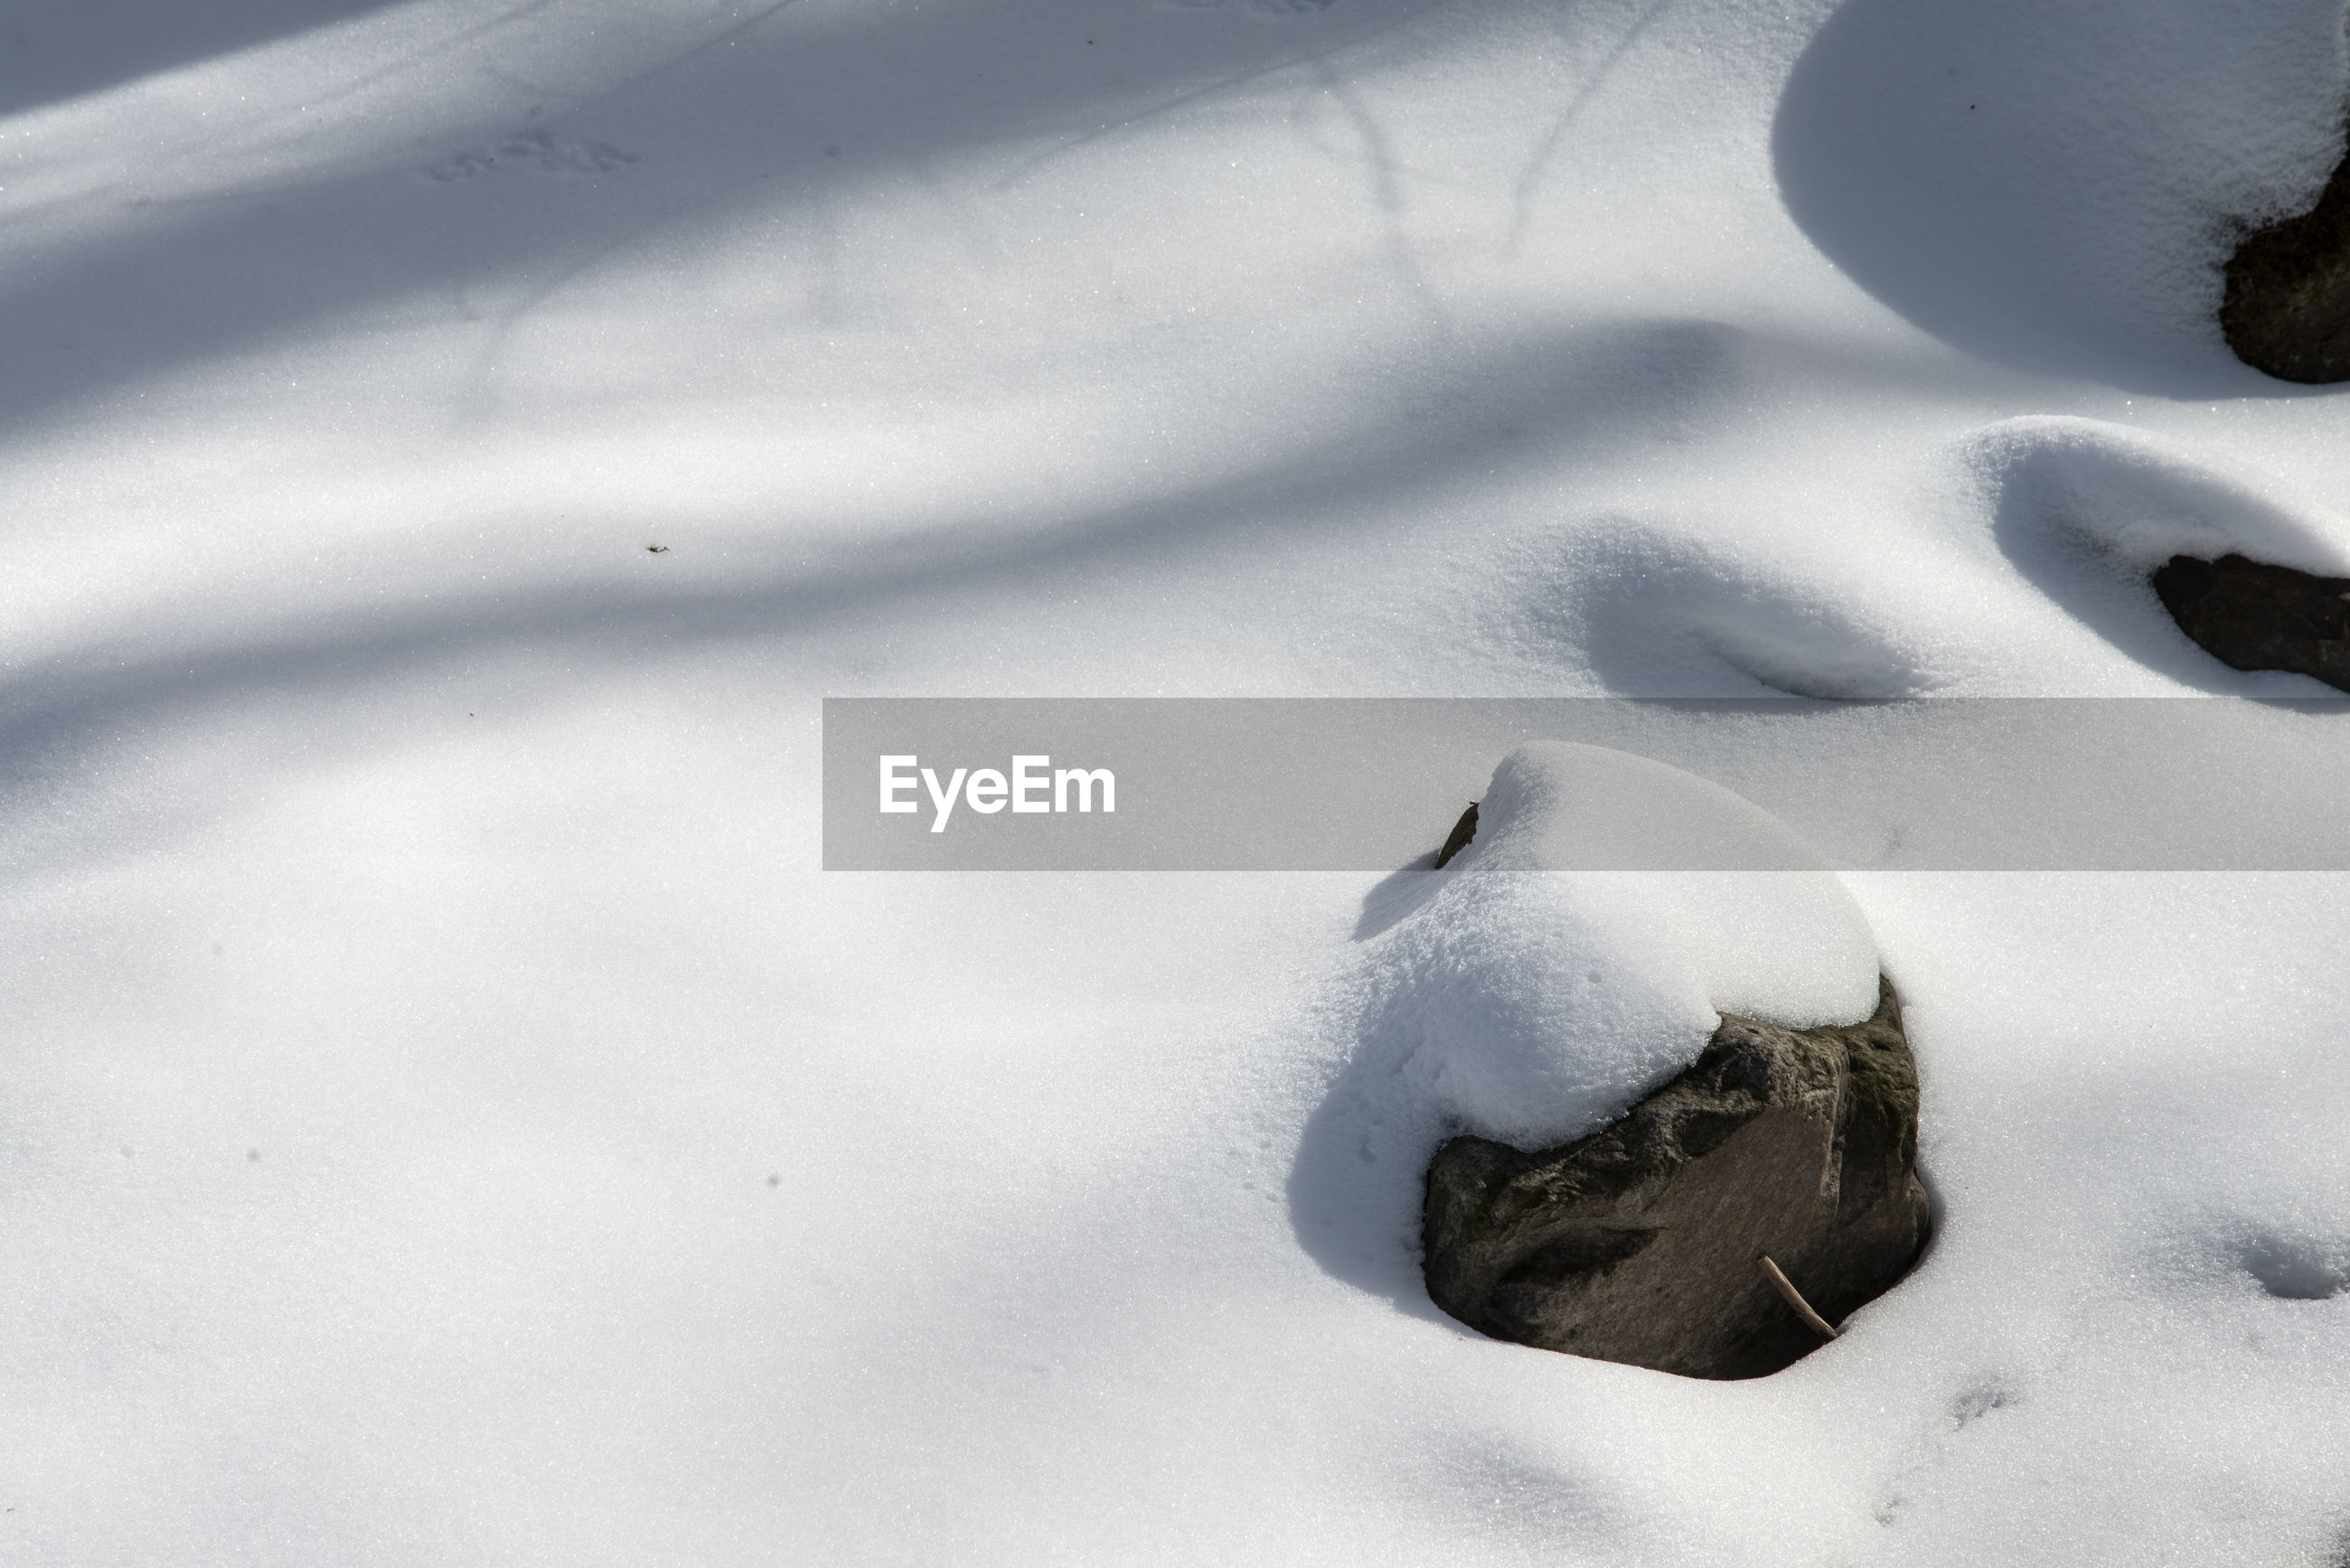 Full frame shot of snow with rock